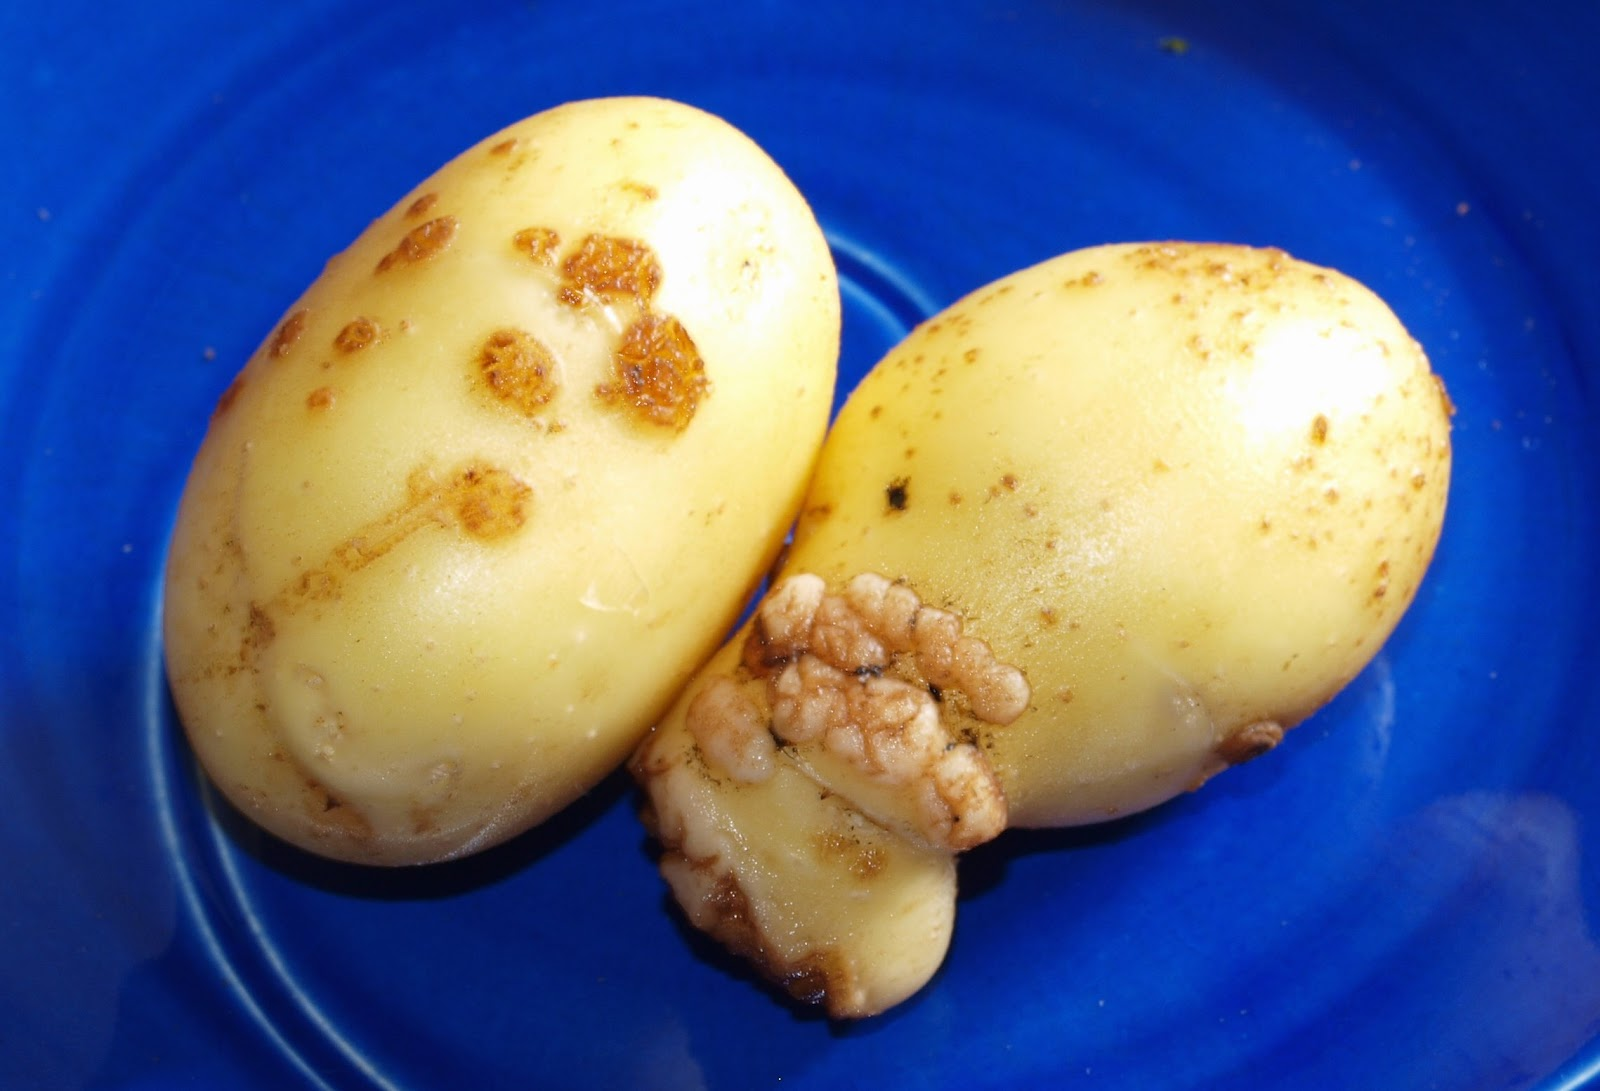 wart disease of potato is caused by